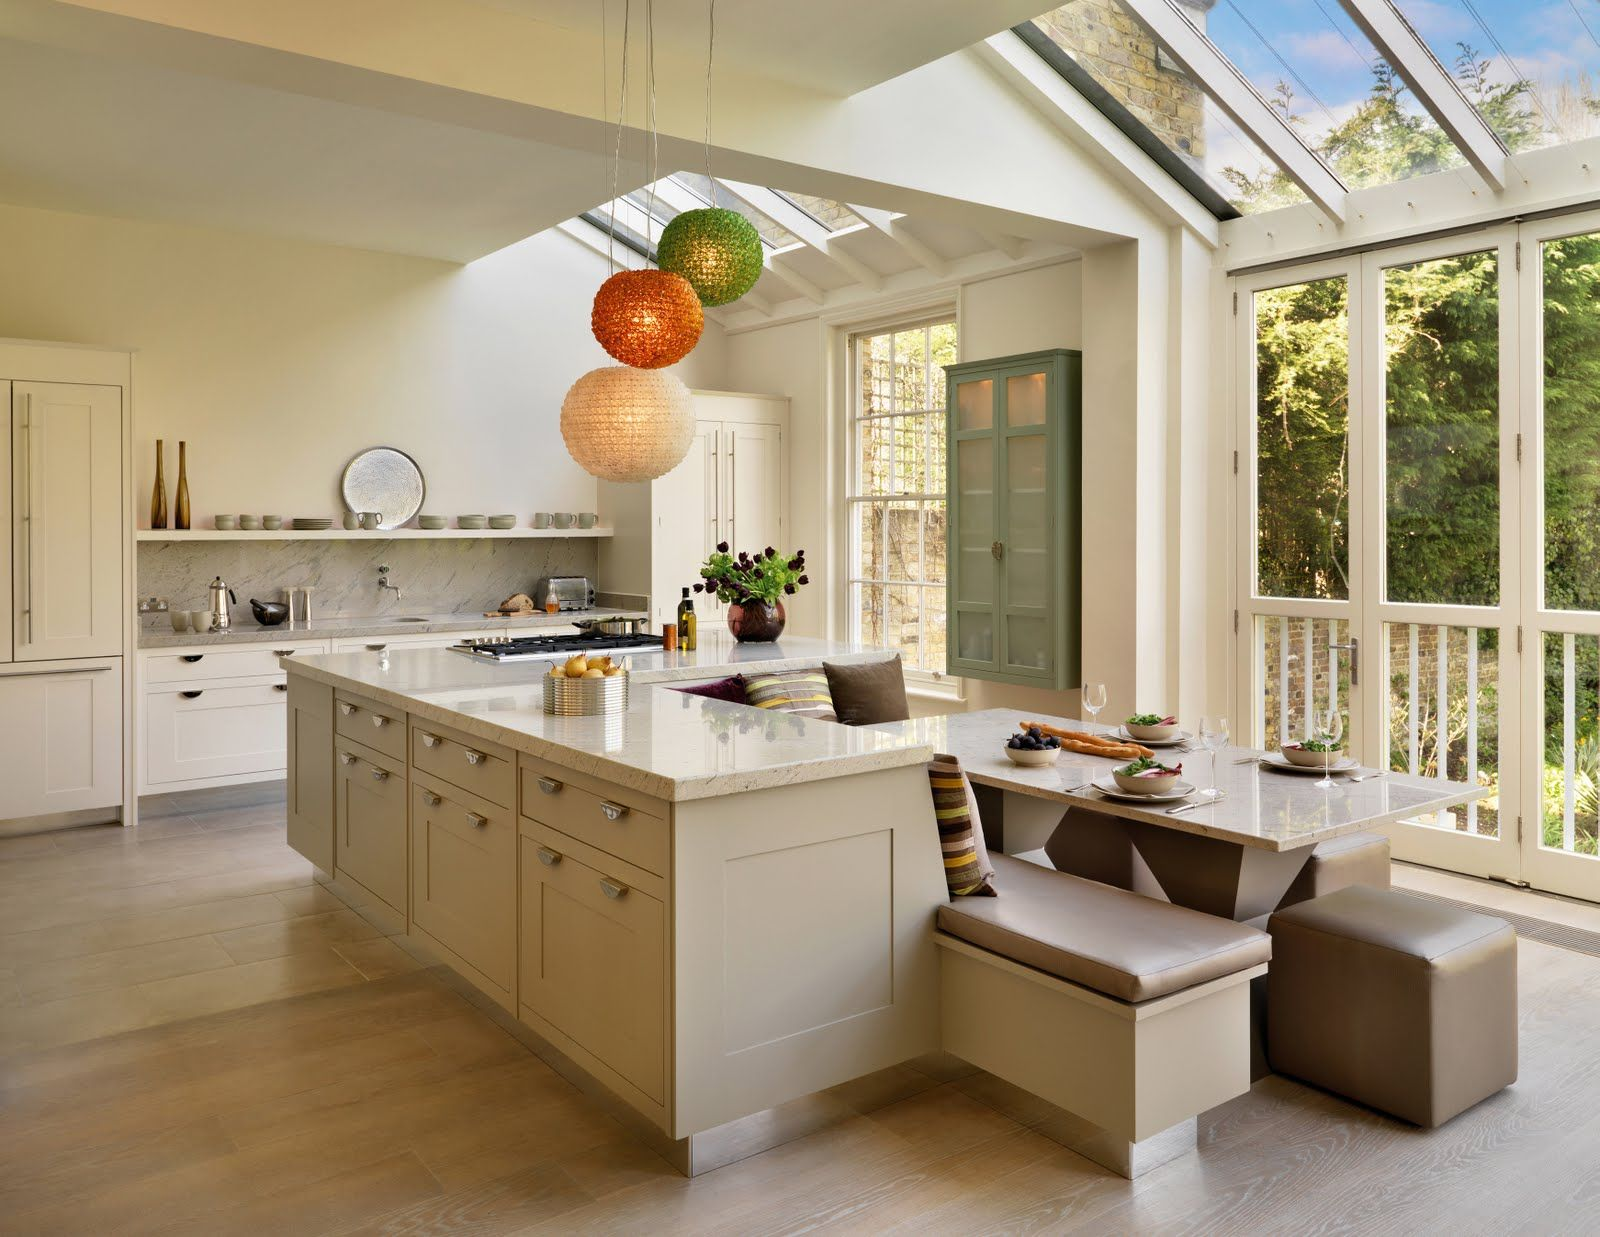 kitchen island design kitchen island designs images about Kitchen Islands Designs and Ideas on Pinterest